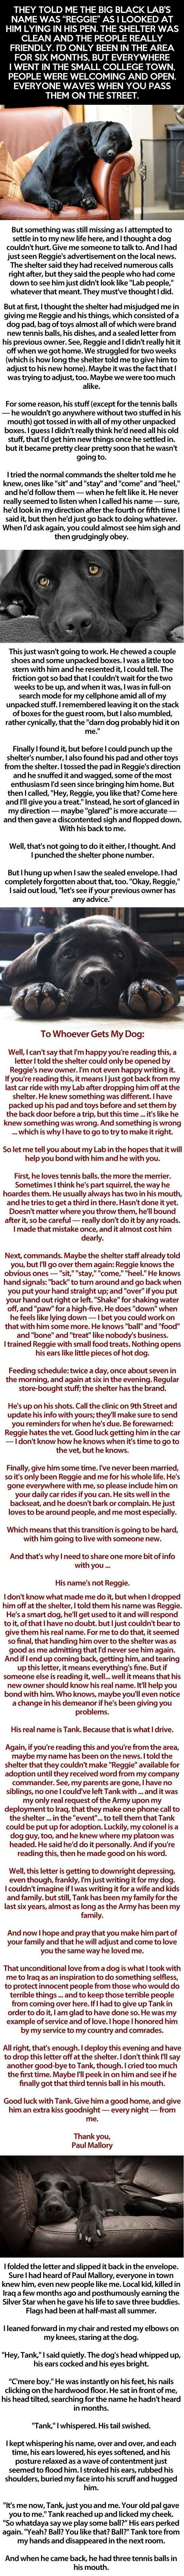 This isn't a typical dog story. The ending blew me away. A must read. #dog #story #doglovers. Soooo good, but made me cry.